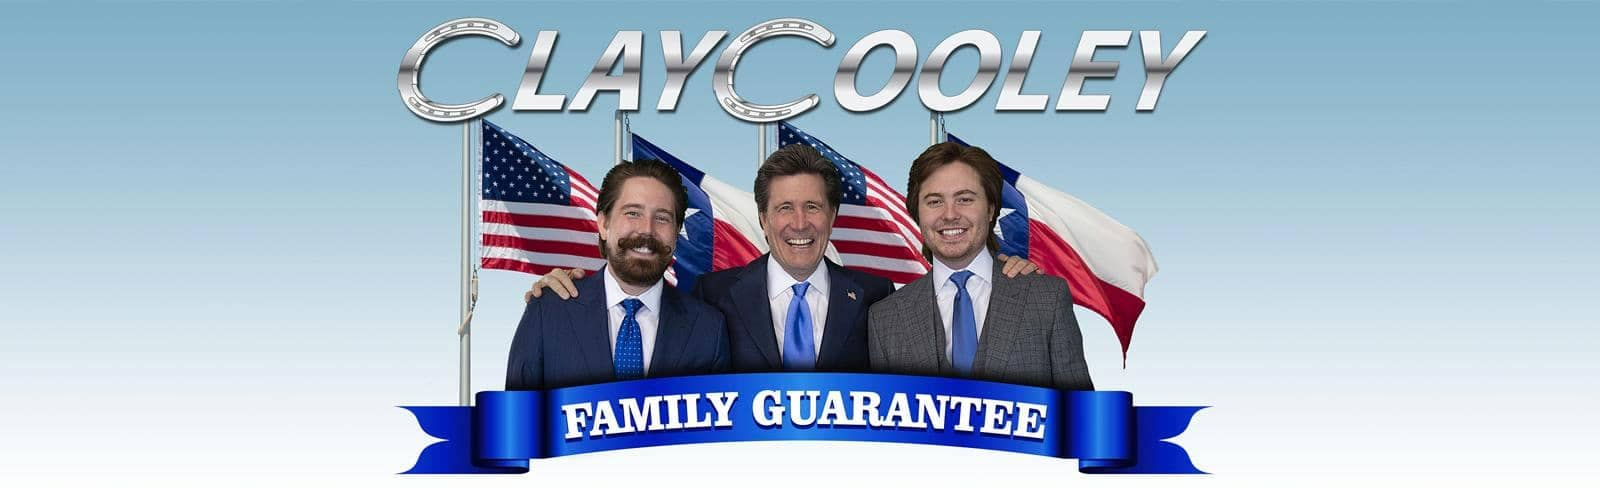 Family Guarantee Banner